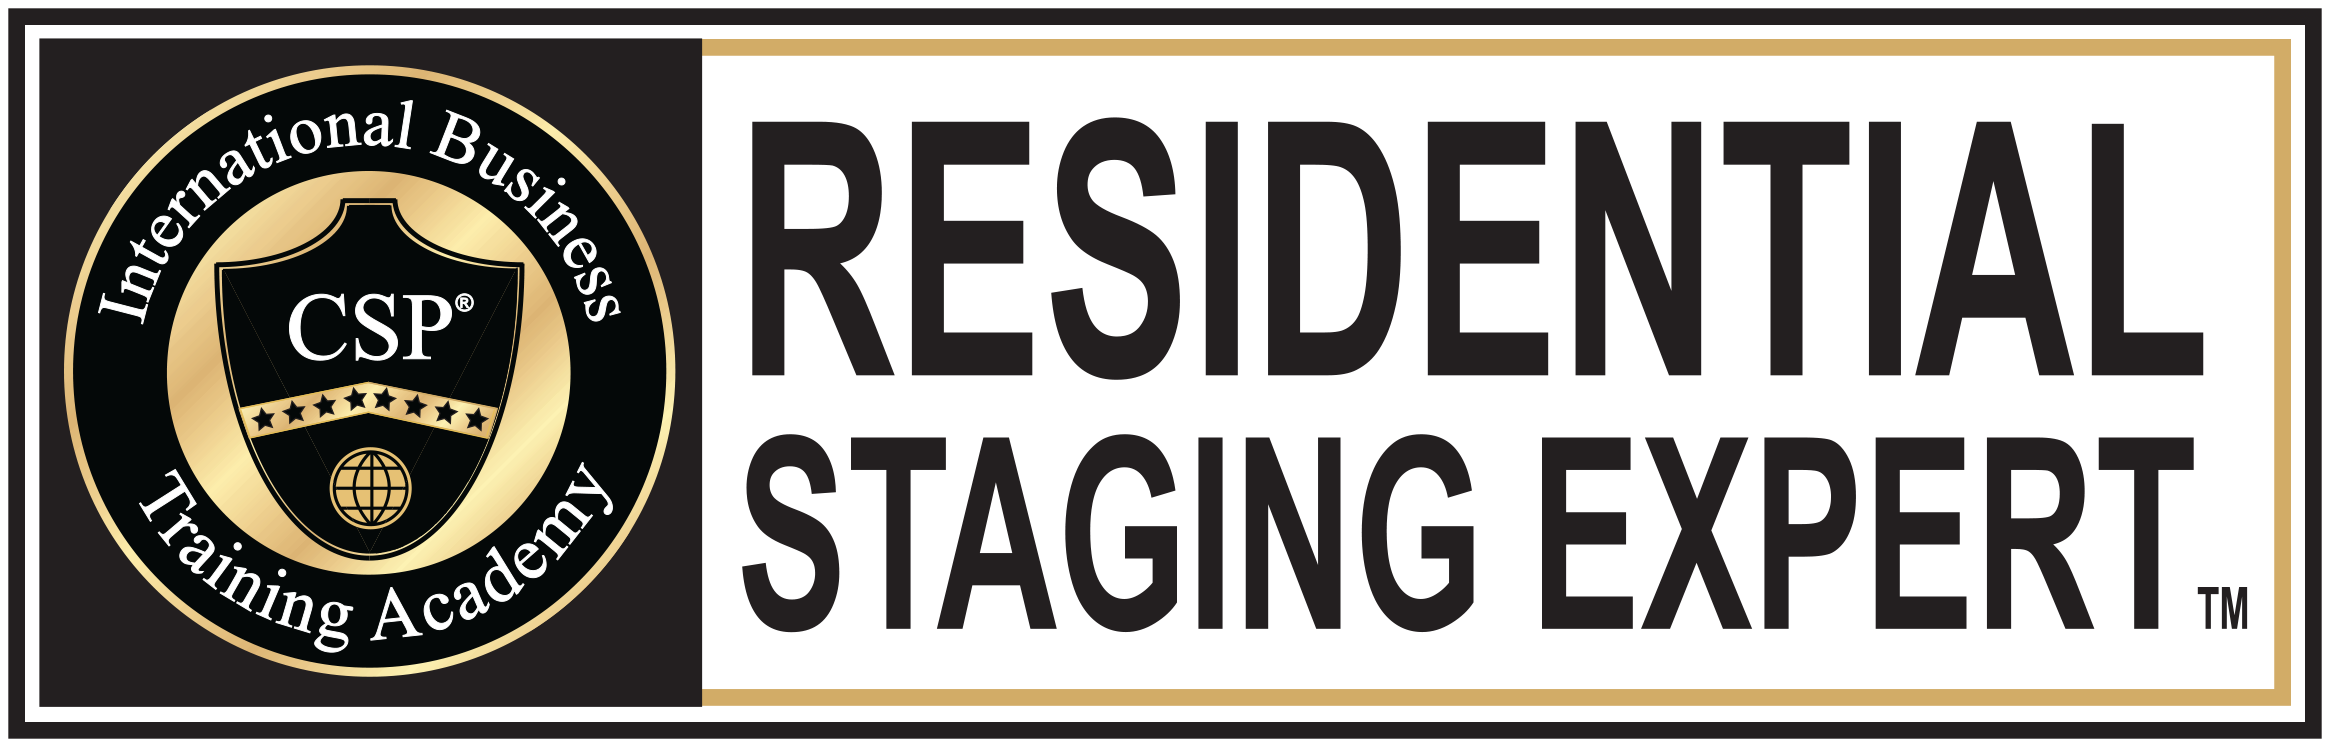 csp-residential-staging-expert-banner-print.png